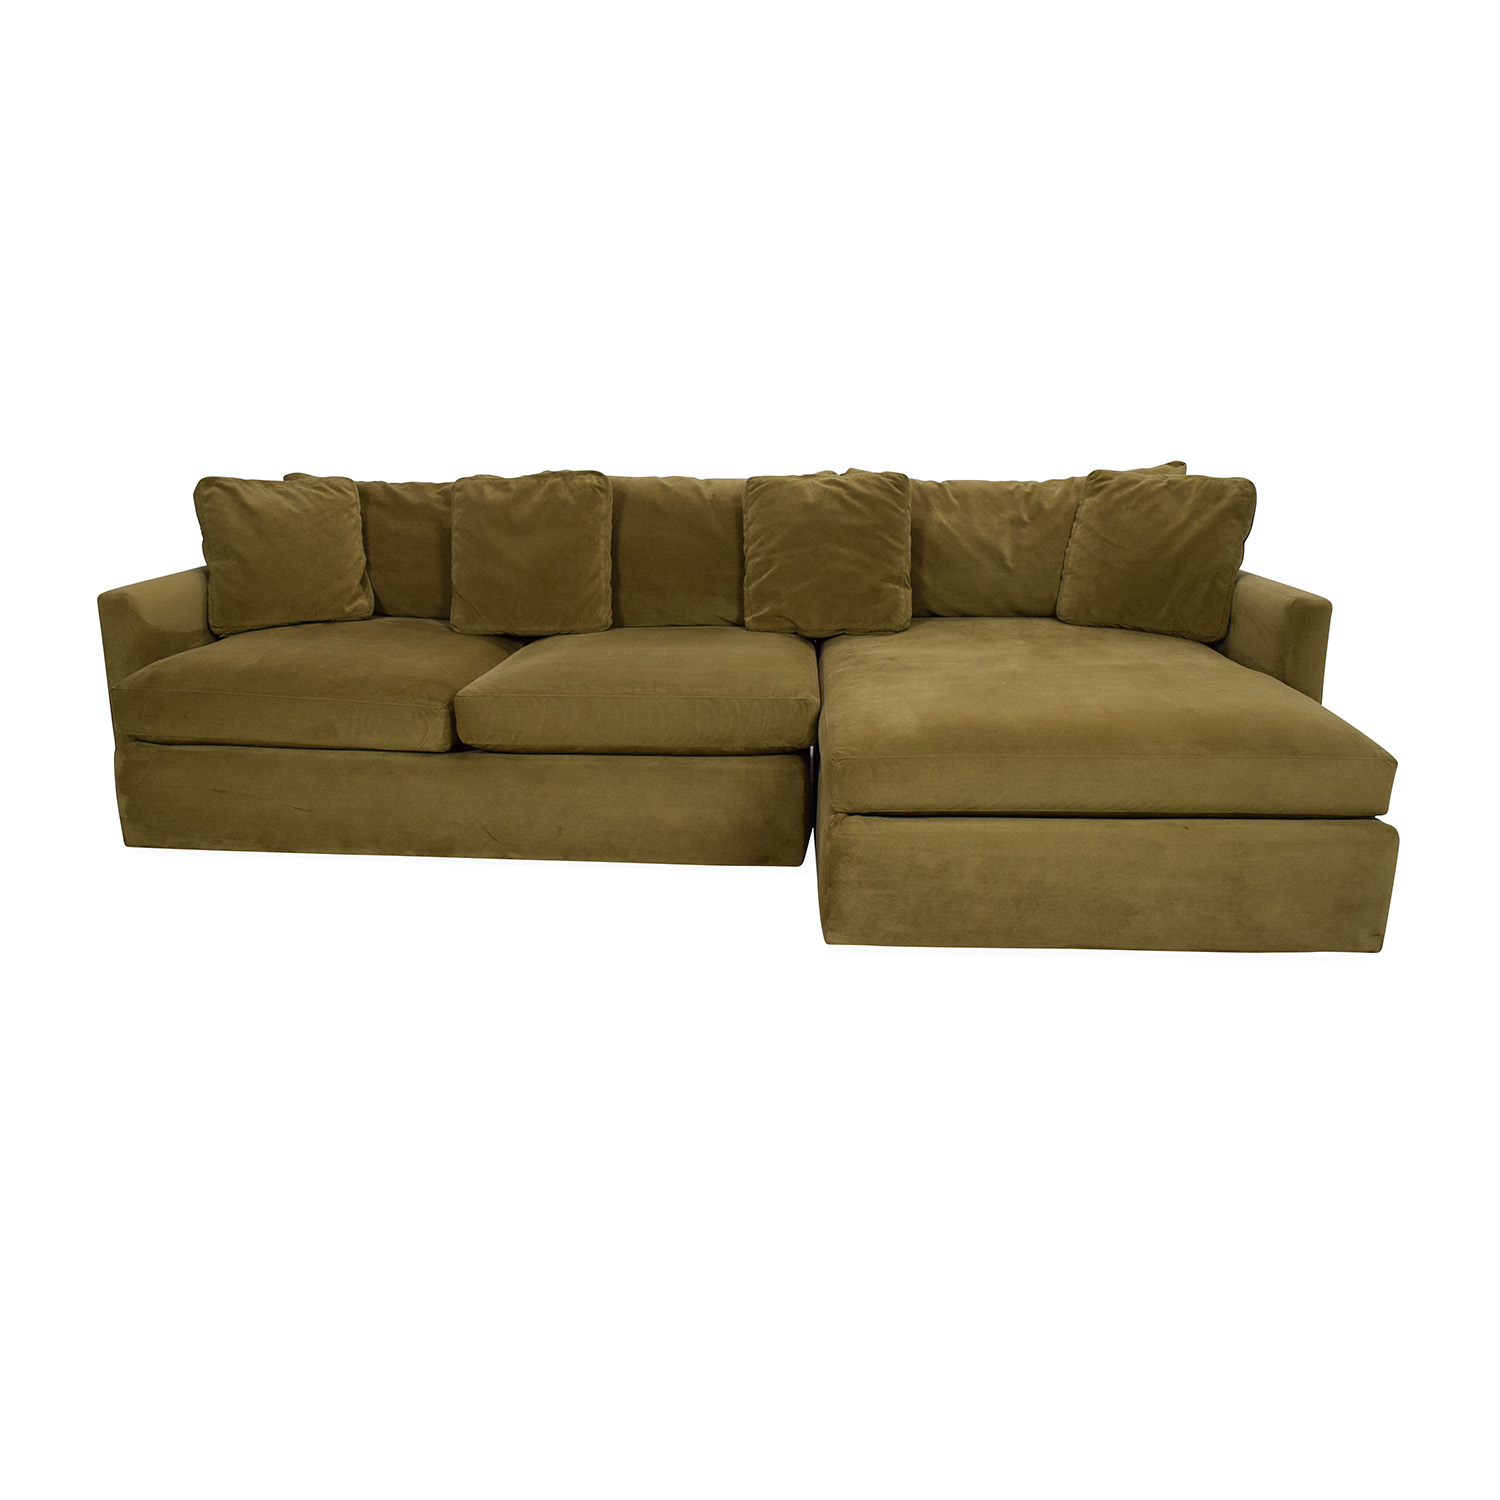 shop Crate and Barrel Lounge II Sectional Sofa Crate and Barrel